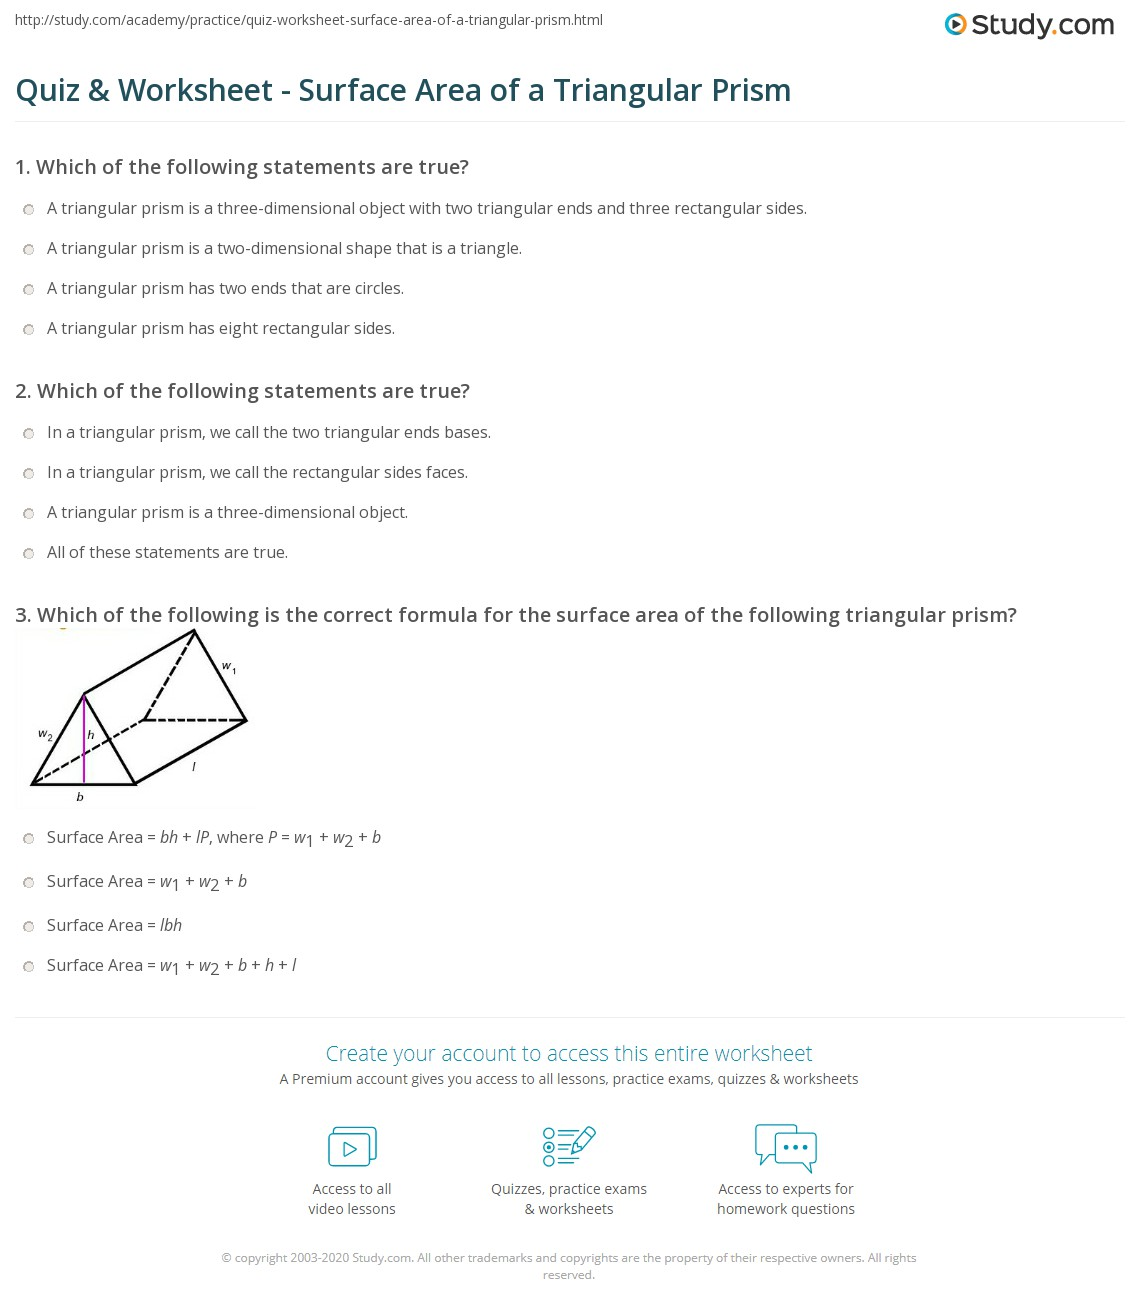 Uncategorized Surface Area Of A Triangular Prism Worksheet quiz worksheet surface area of a triangular prism study com print worksheet